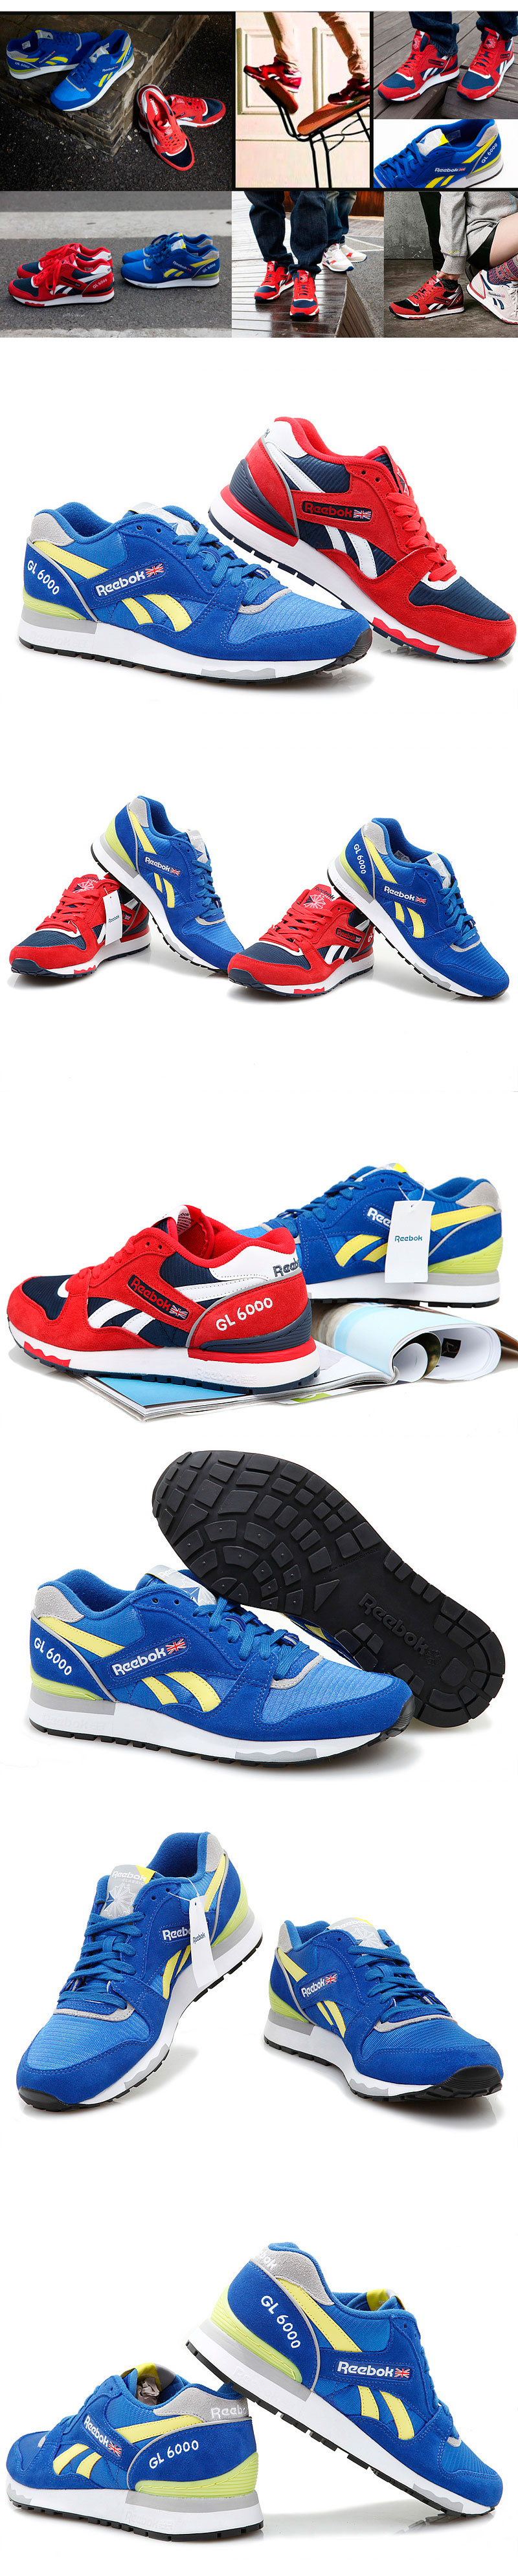 большое фото №6 Reebok GL6000 J98339  RBK/YELLOW/GREY